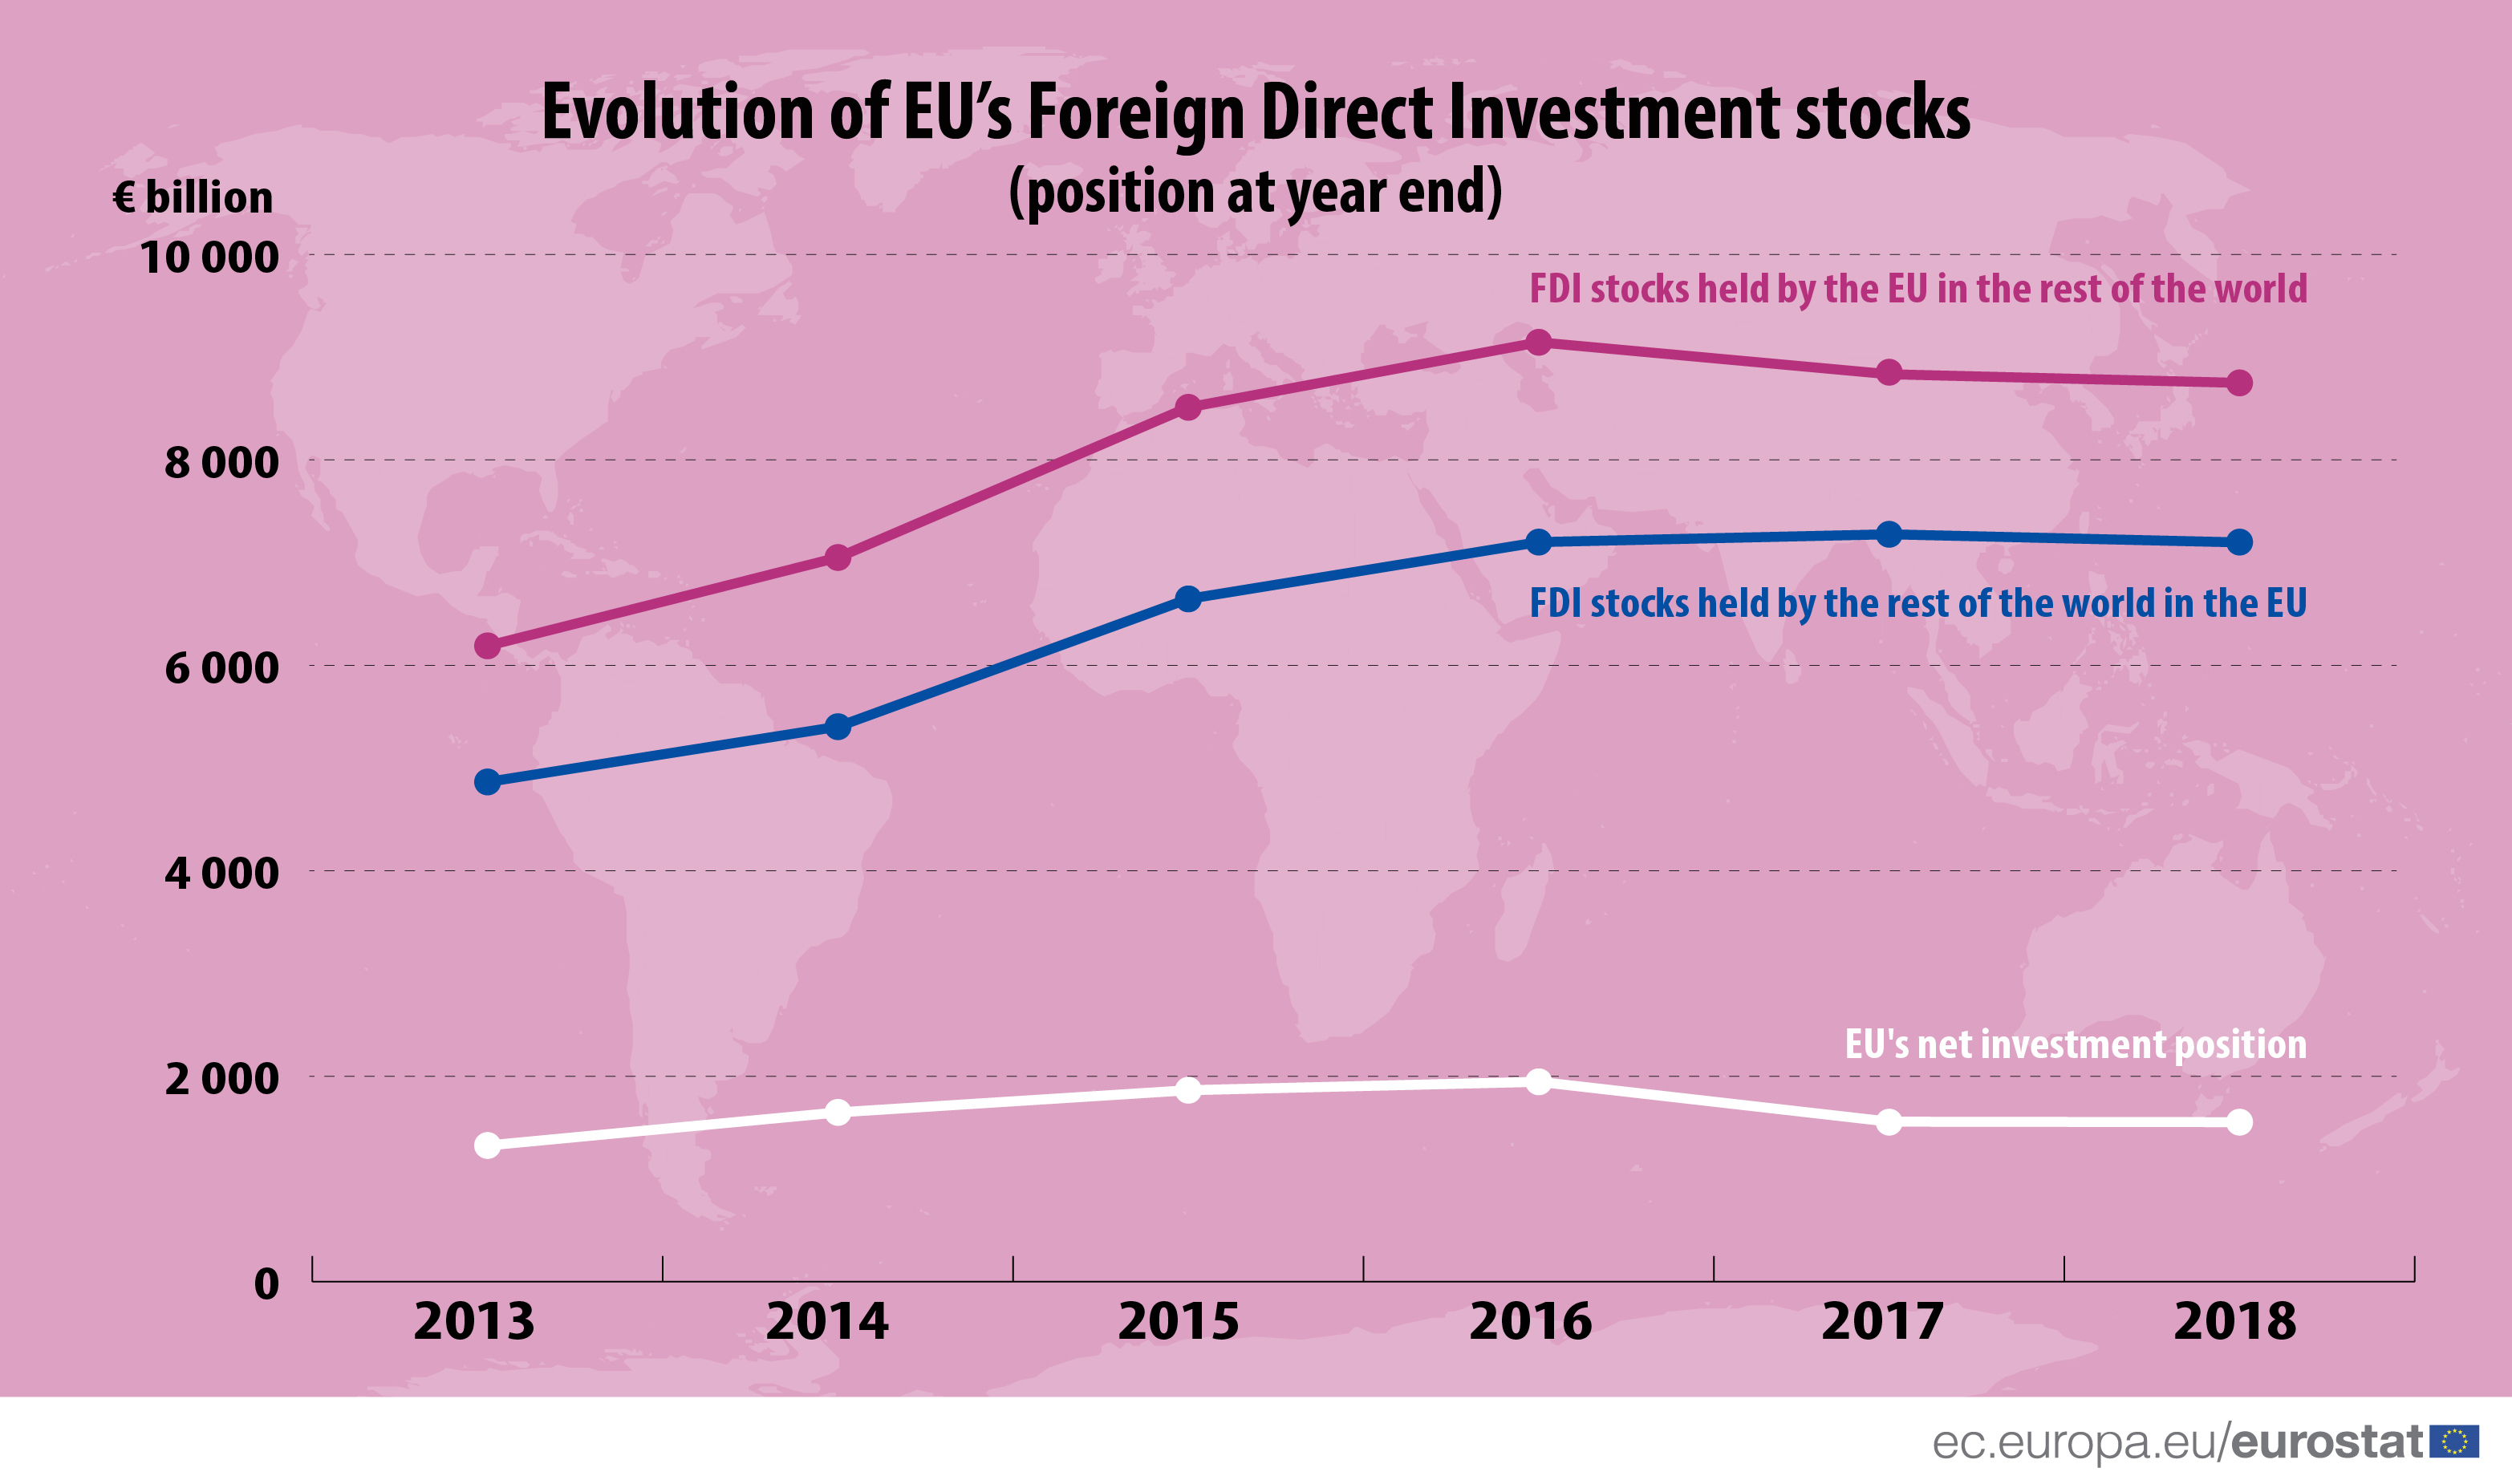 Evolution of EU's FDI over time, 2013 2018